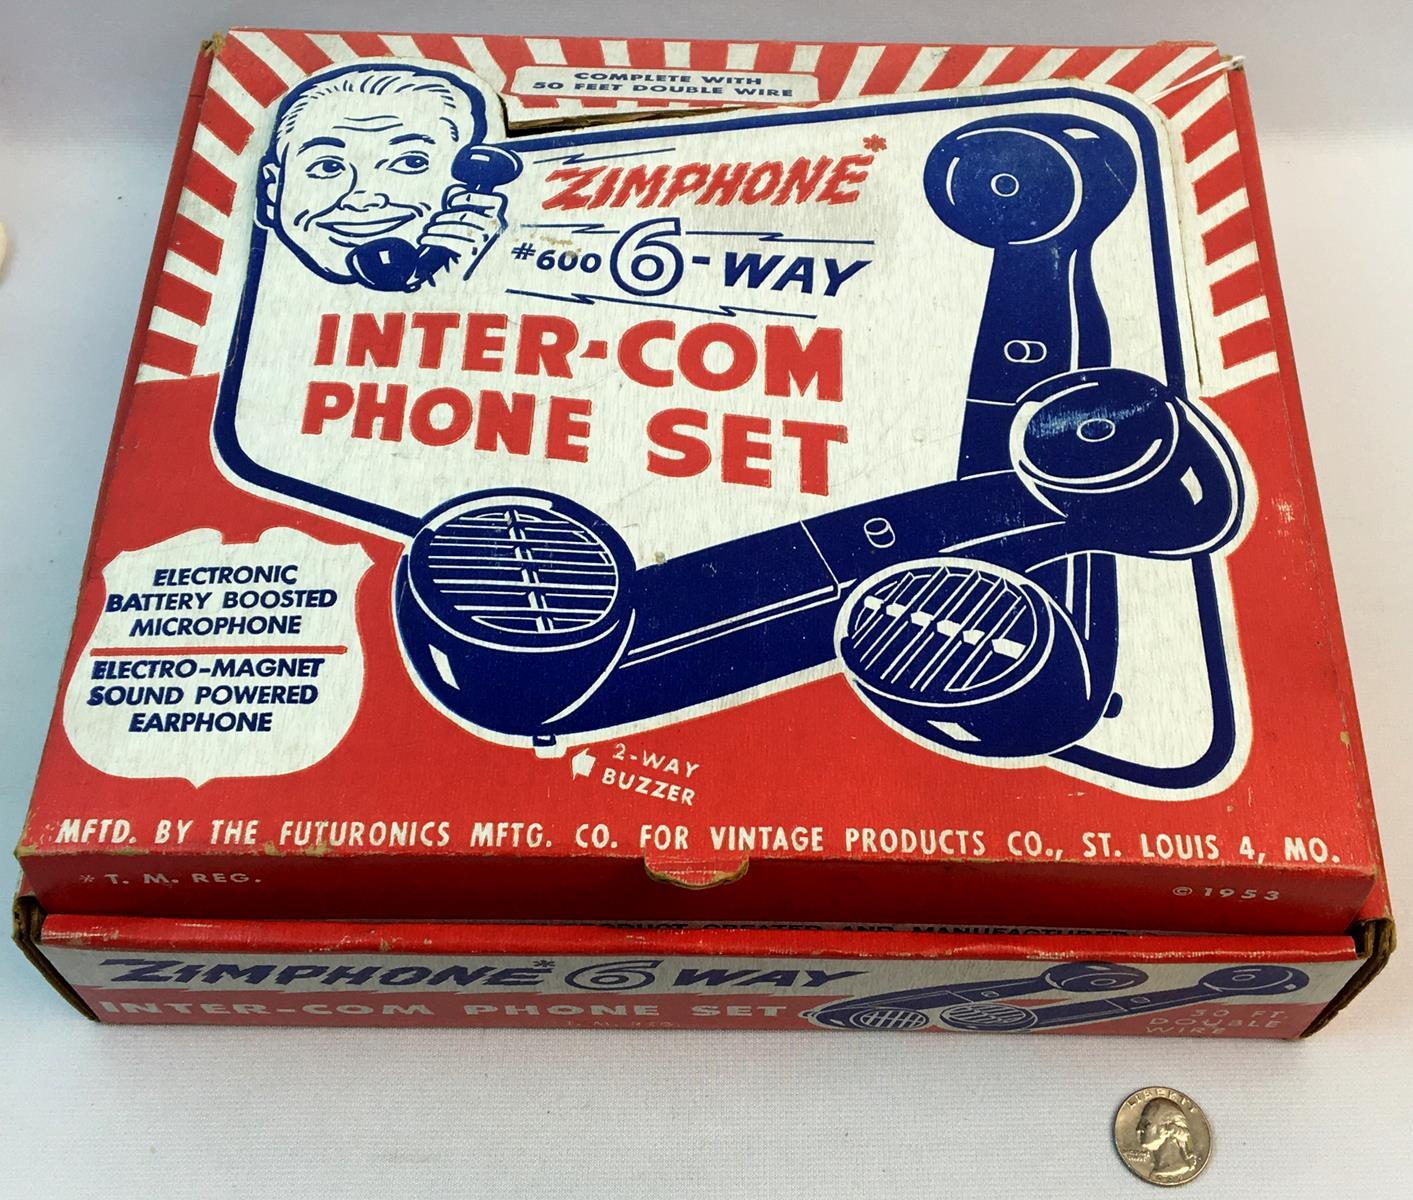 Vintage 1960's Zimphone 6 Way Toy Inter-Com Phone Set w/ Original Box